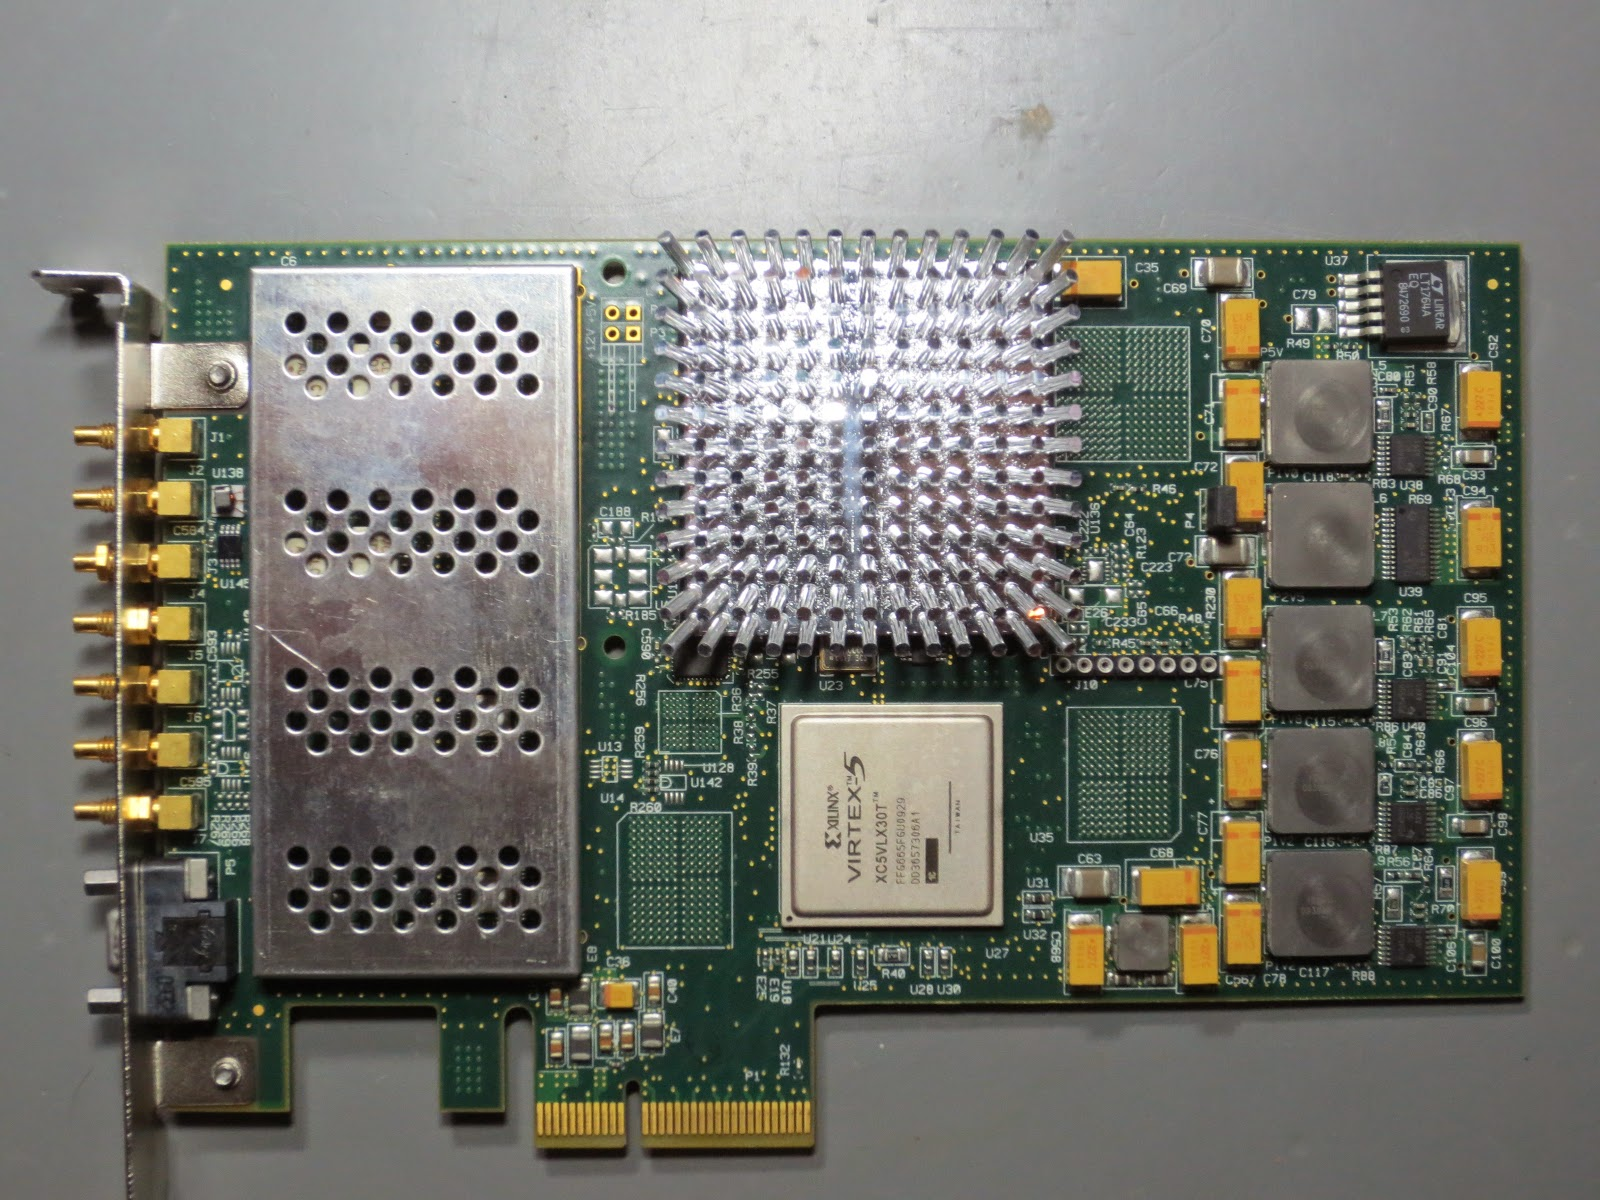 Make your own 10 Gigabit Switch from Mellanox Connetex EN cards and